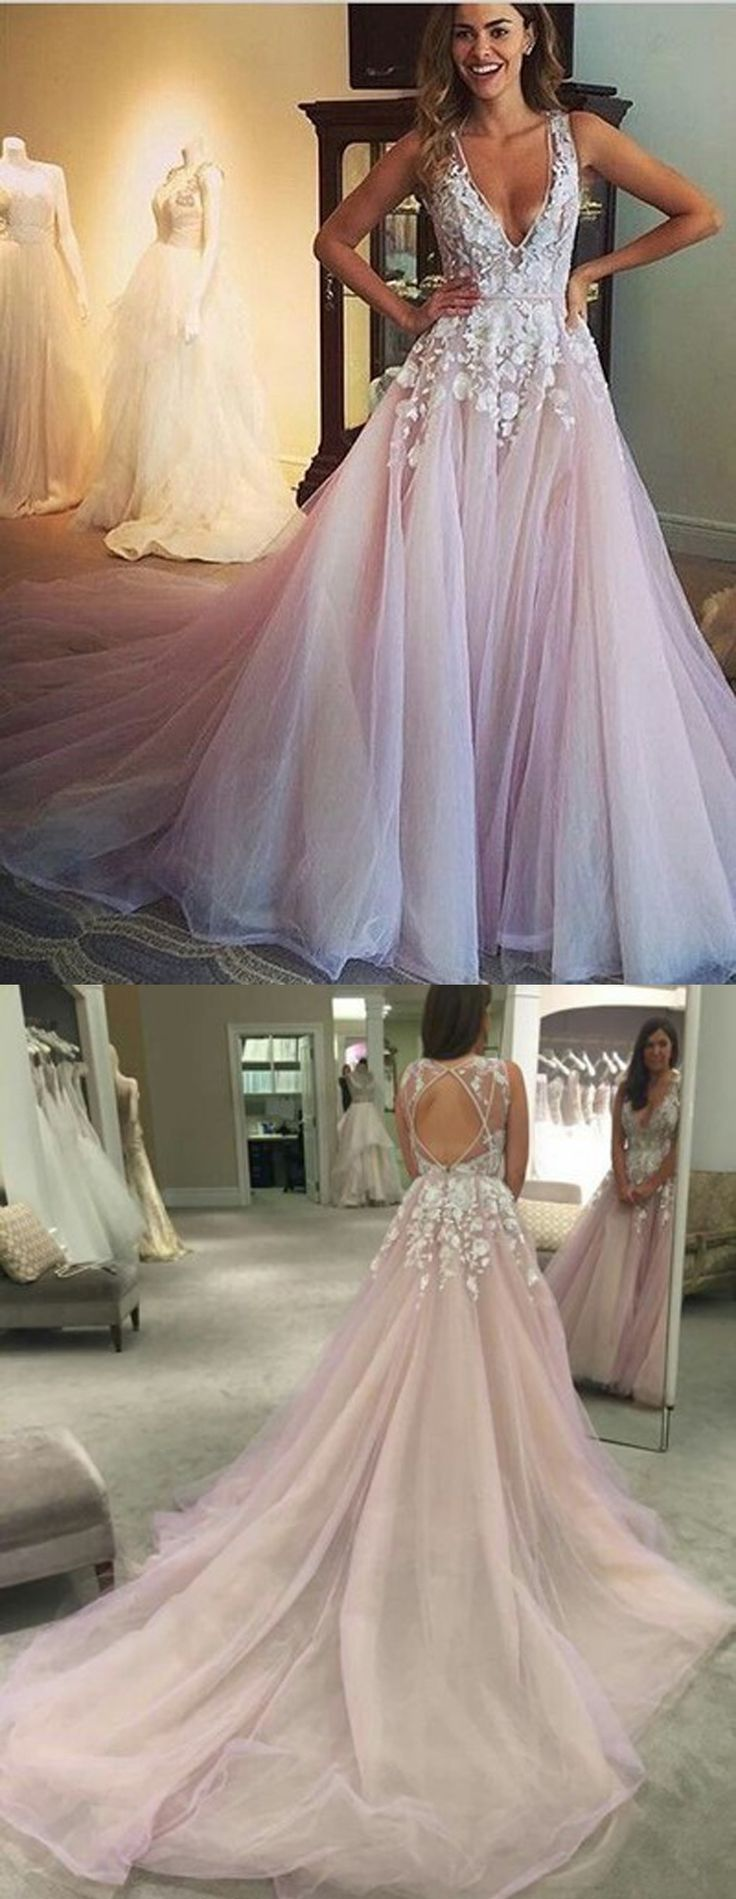 Charming Wedding Gown,Backless Tulle Wedding Gown,Gorgeous A-line Scoop Long Wedding Dress,Prom Dress with Appliques,Lavender Dramatic Wedding Dress,Wedding Dresses,HJ68